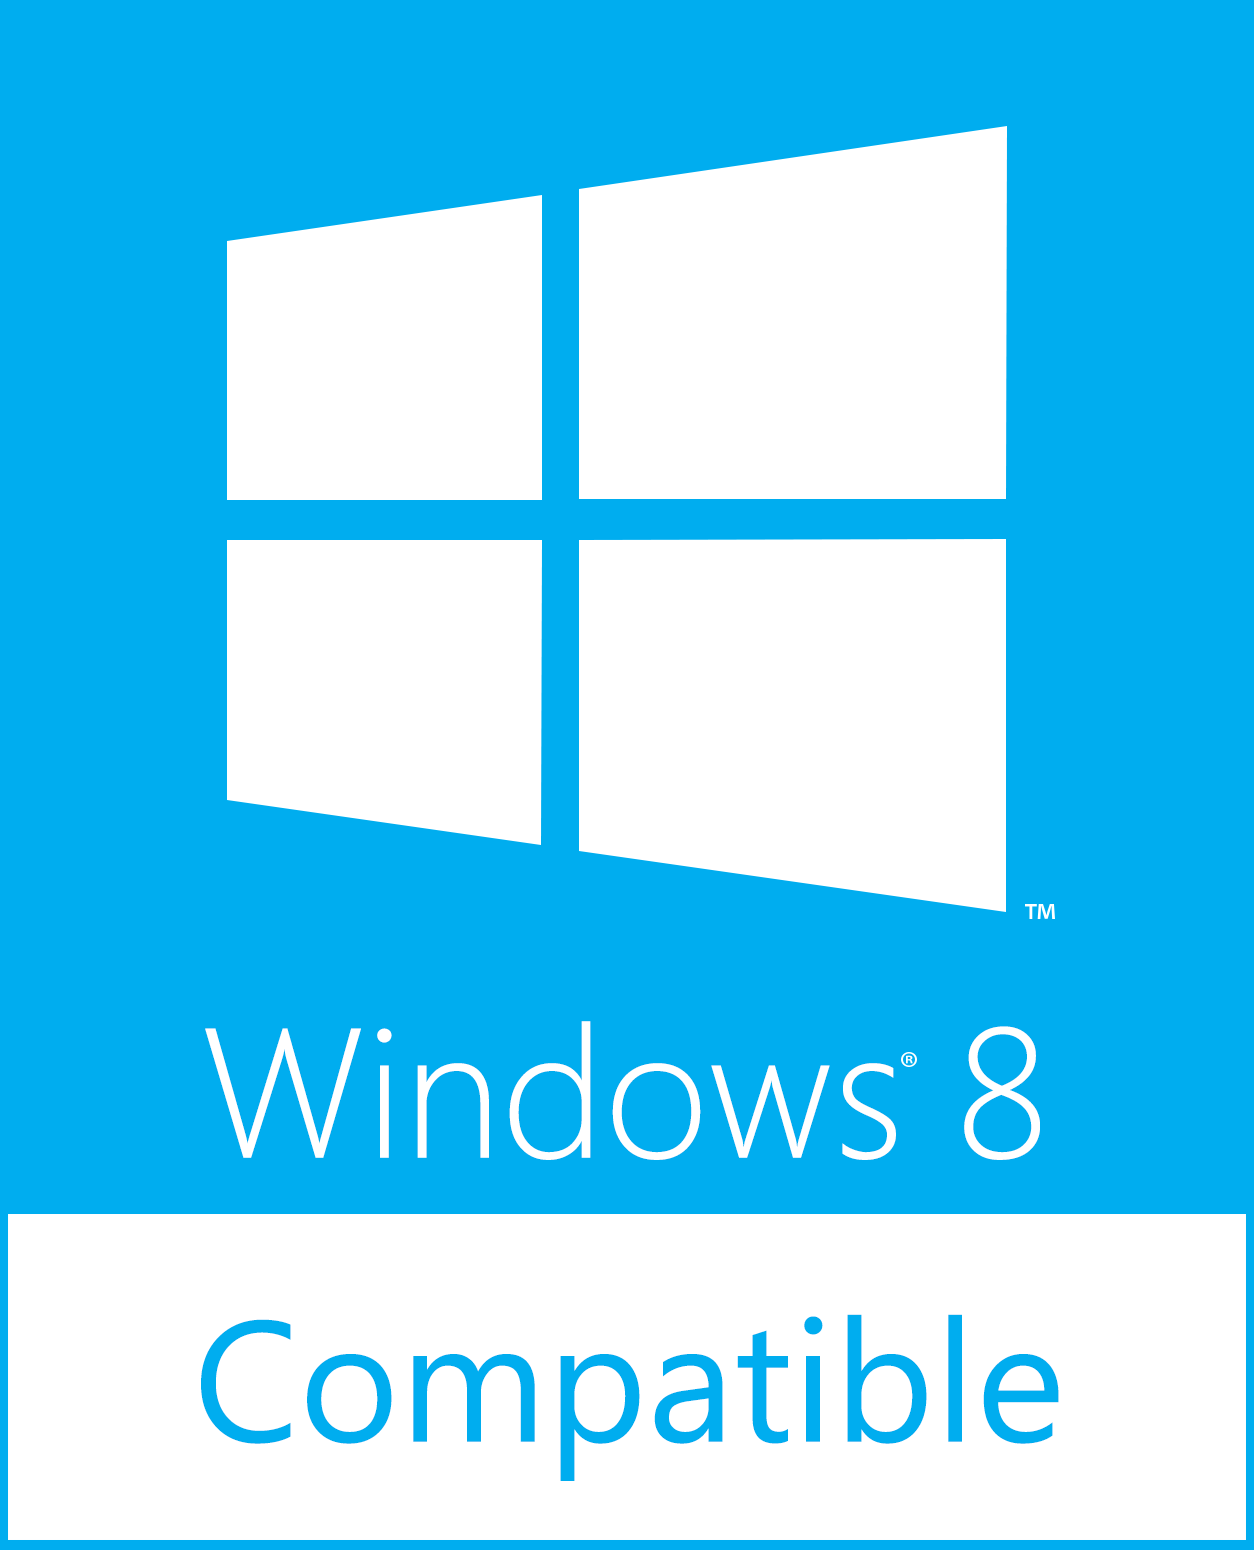 http://fc08.deviantart.net/fs71/f/2012/178/2/b/windows_8_compatible_logo_final_by_brebenel_silviu-d552tyf.png